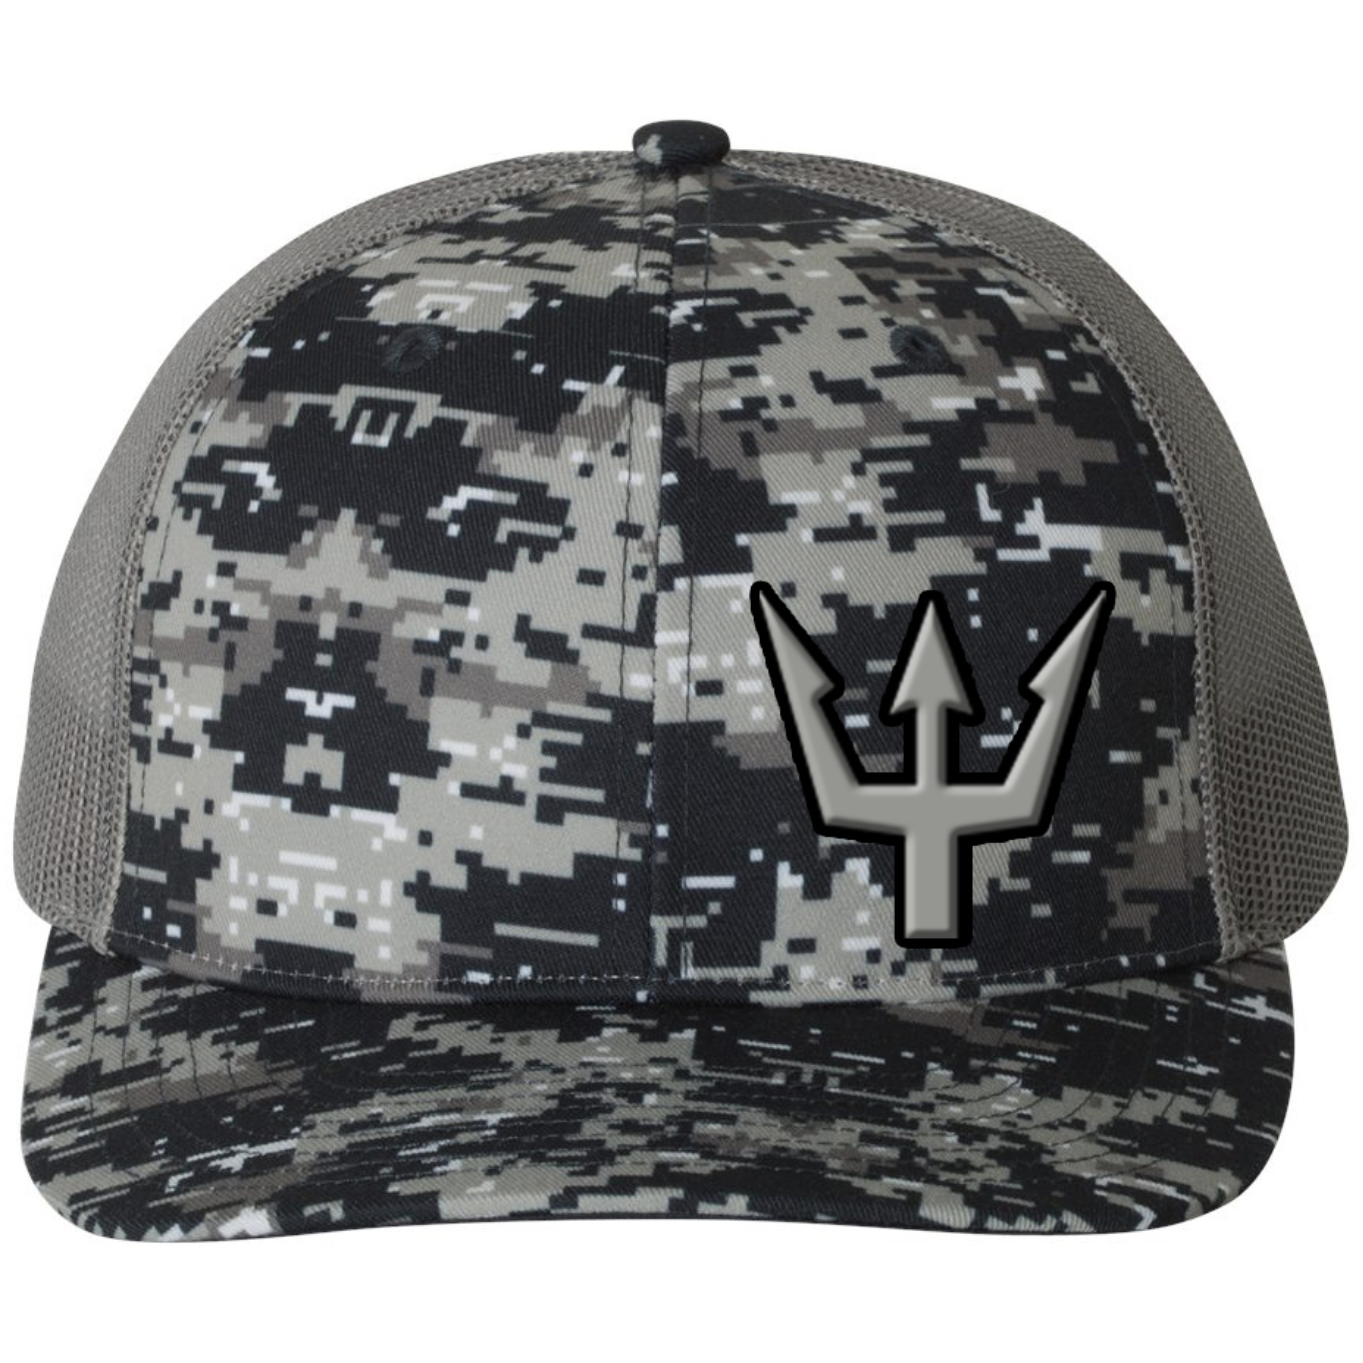 Waterman's Wear Trident Logo Adjustable Mesh Back Trucker Hat - Digital Military Camo/Charcoal